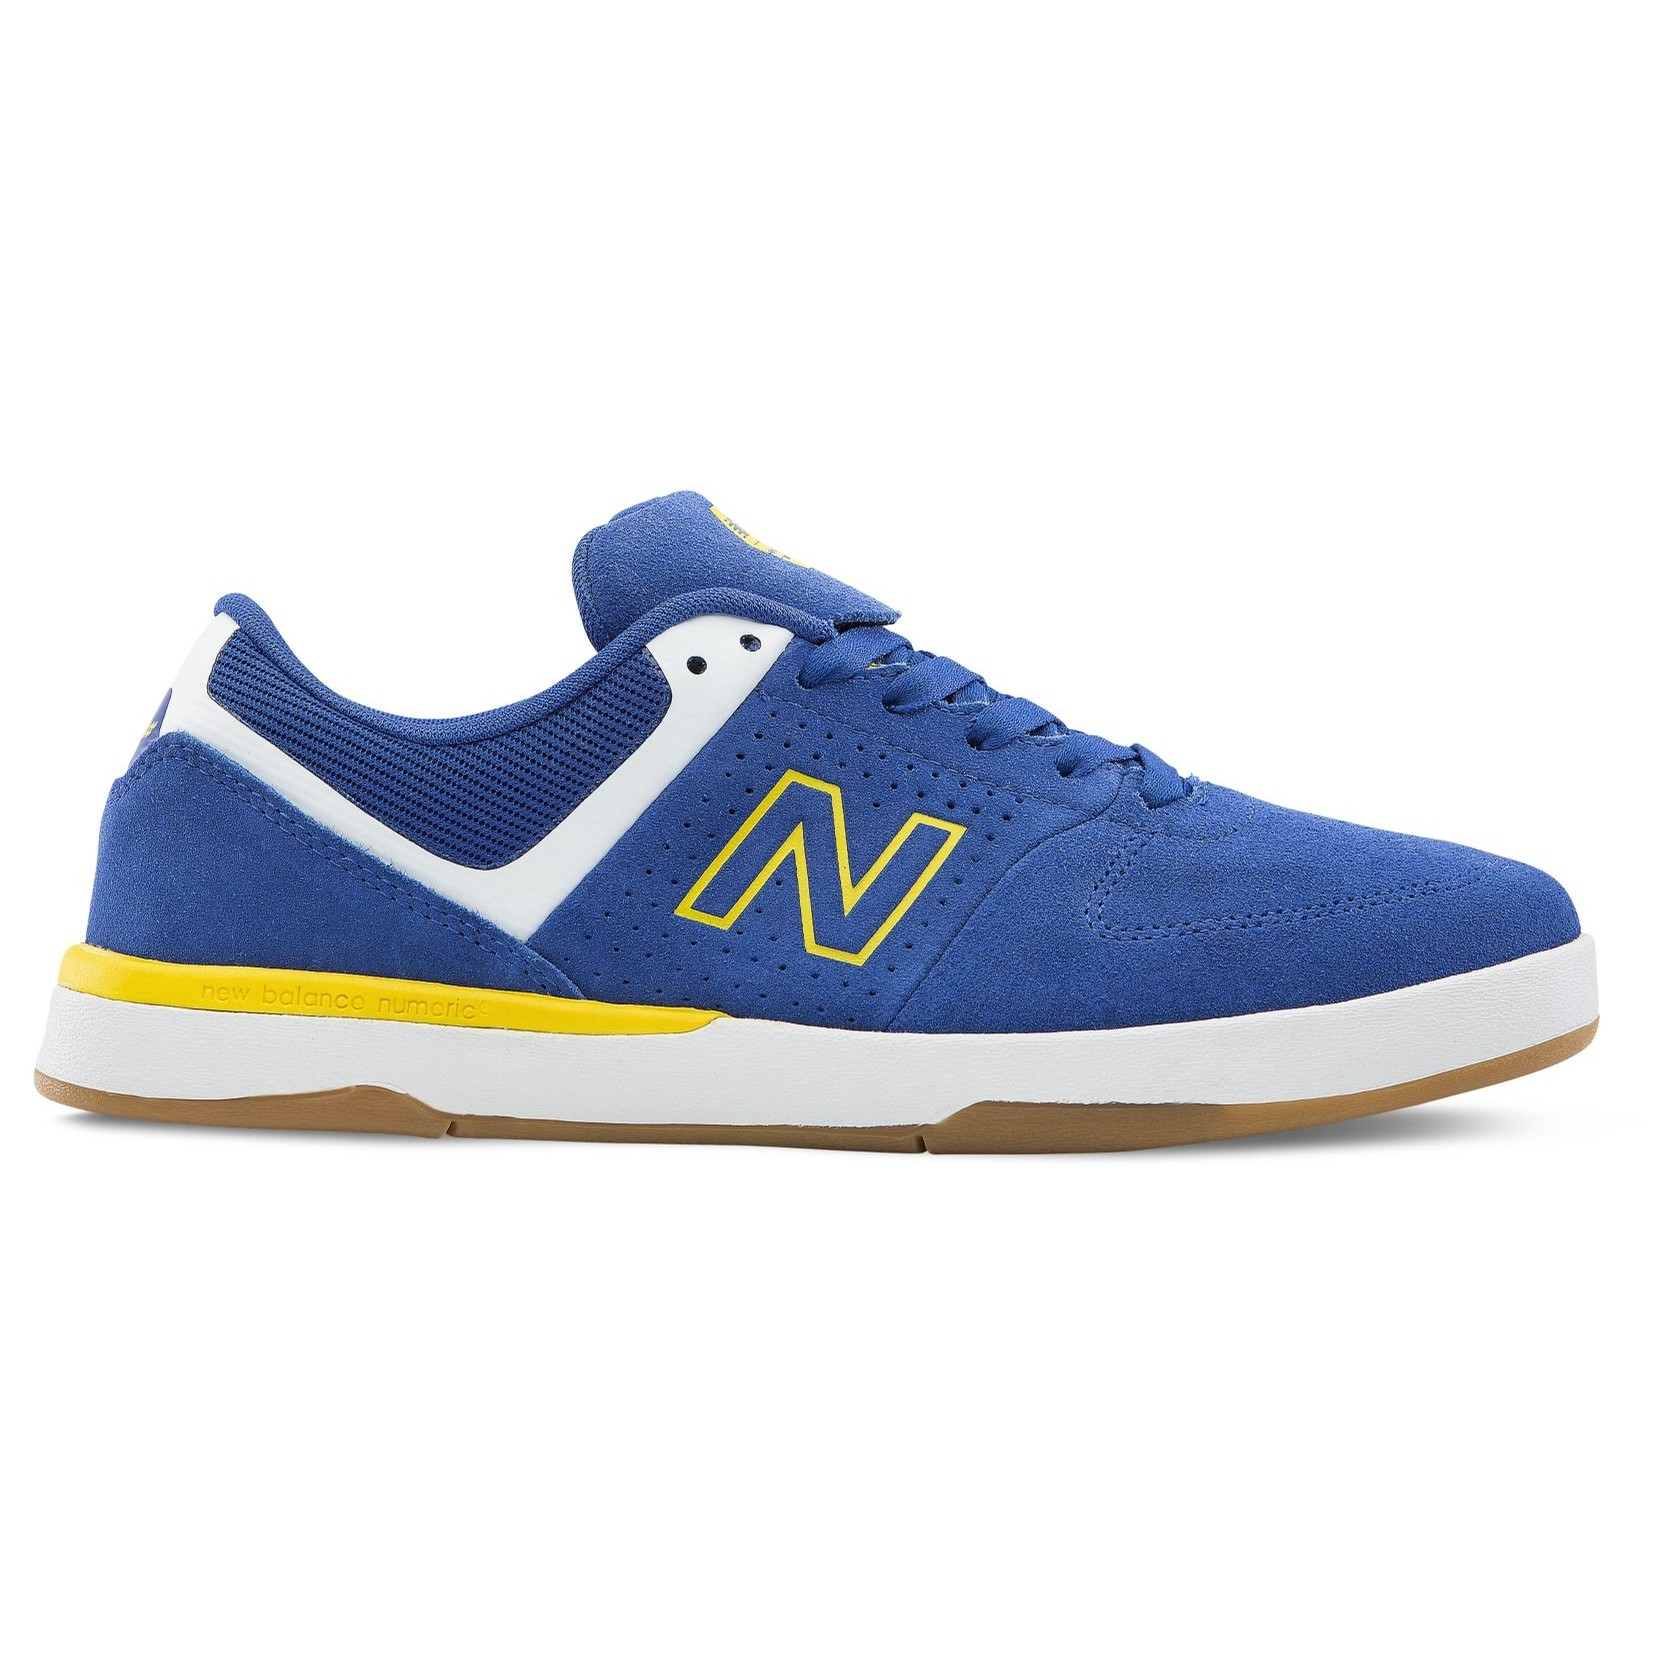 NM 533 NPK (Royal/White)